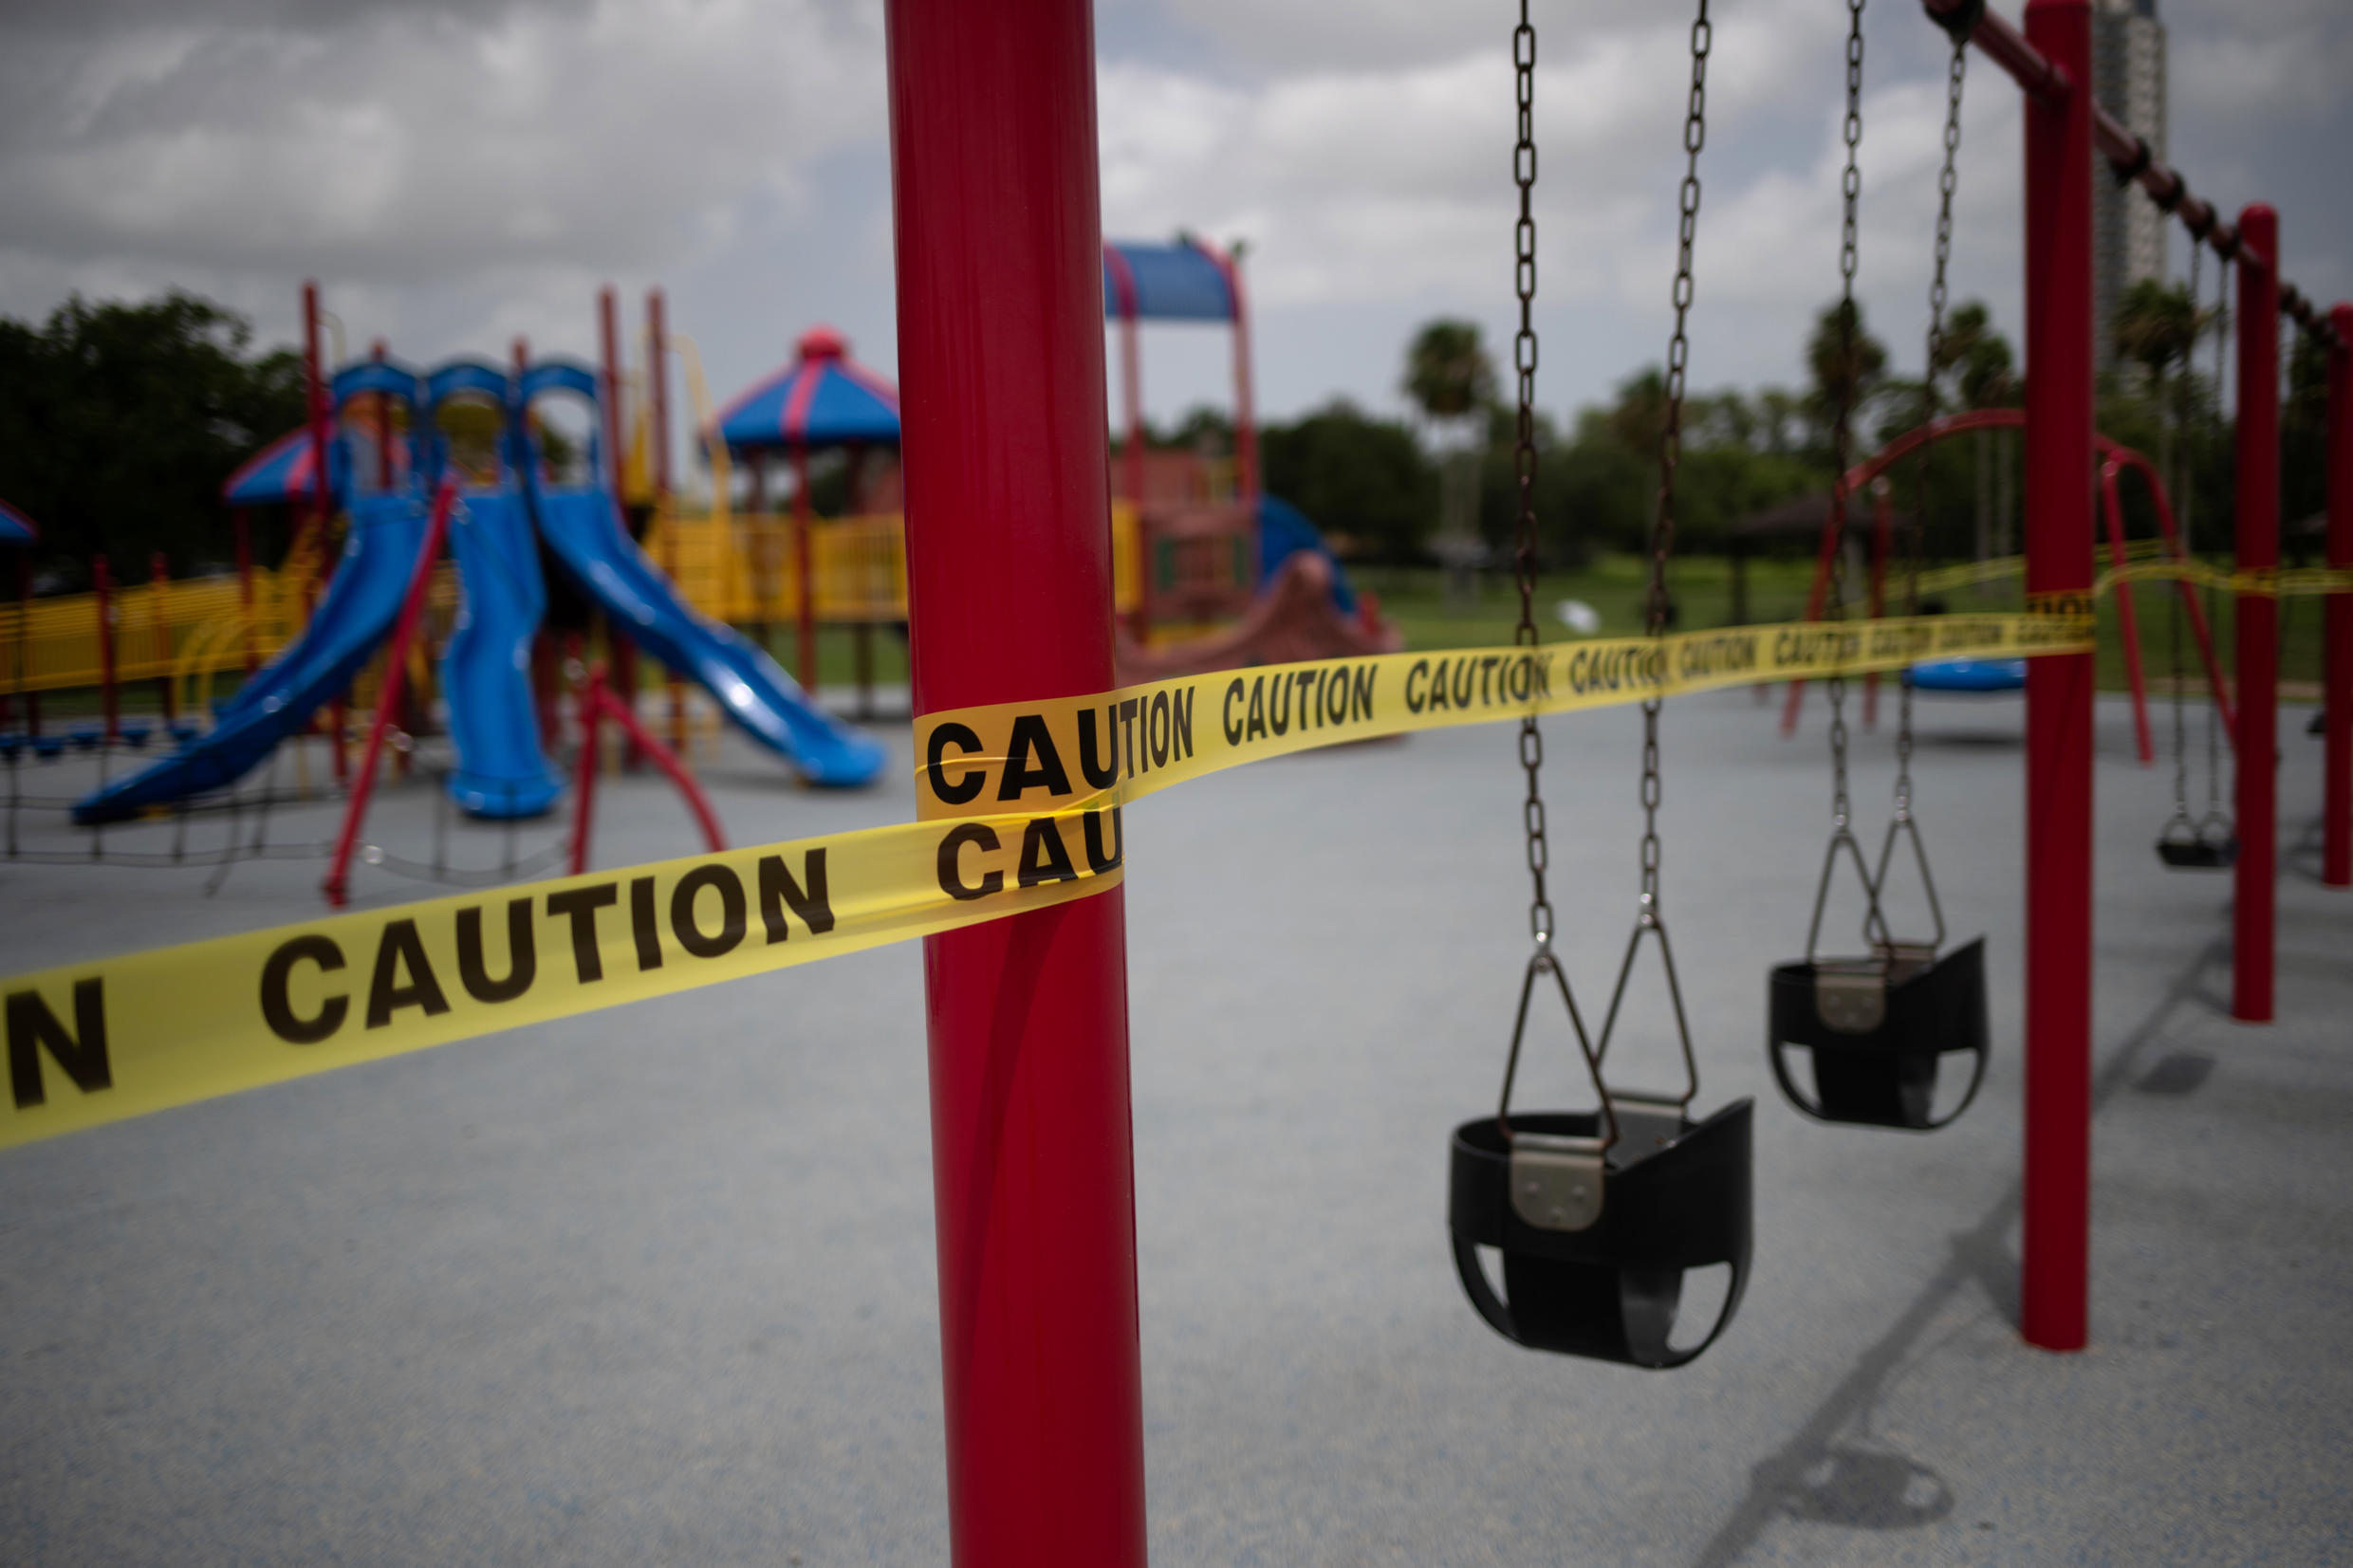 An empty playground surrounded by caution tape in Searbrook, Texas, one of the worst-hit US states, pictured on July 8, 2020.